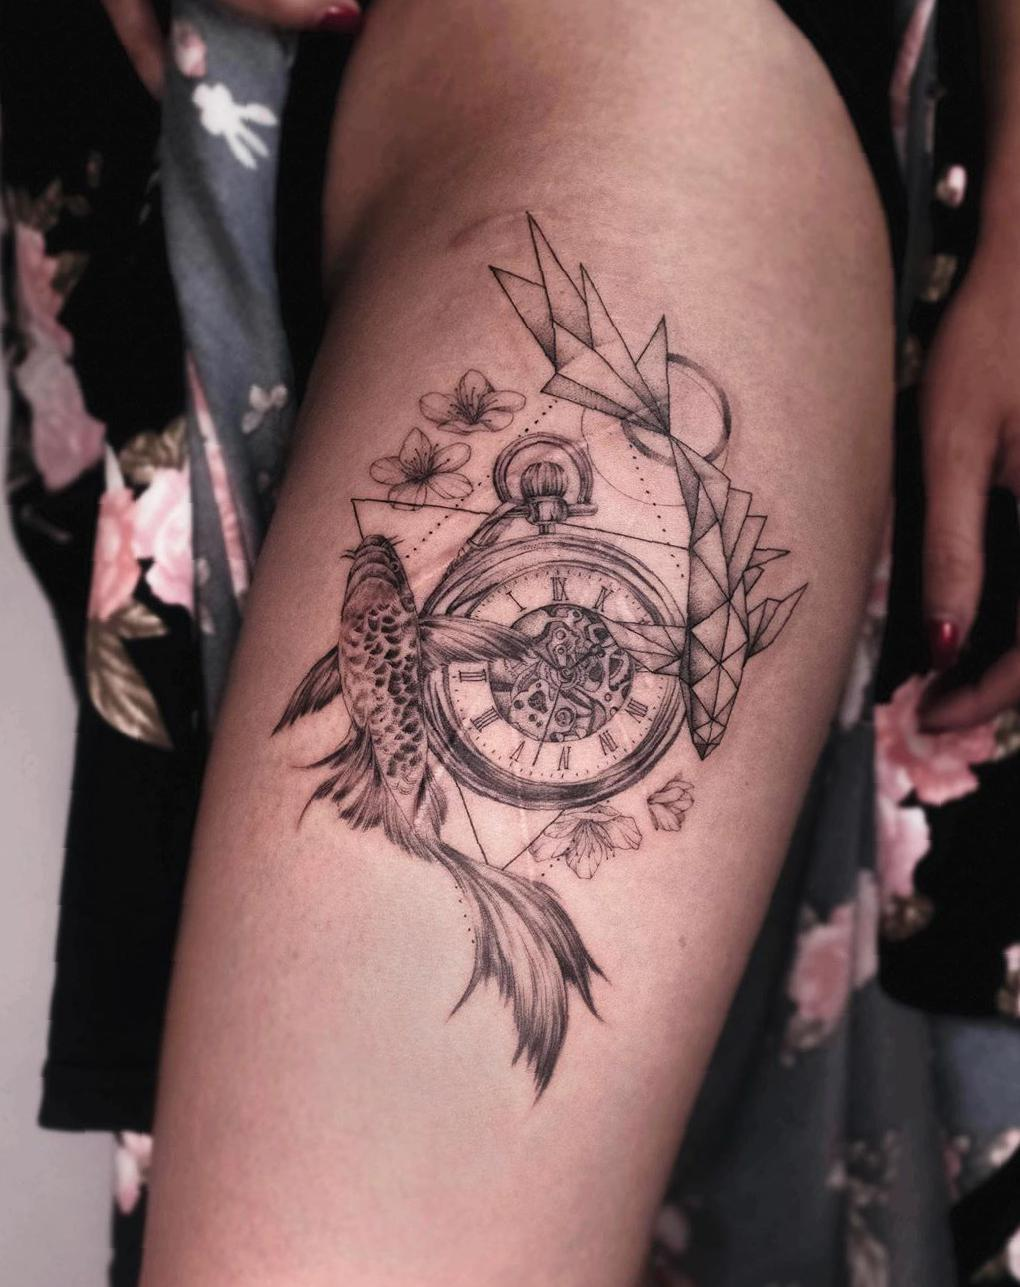 38 Mind-Blowing Thigh Tattoos Designs For Women 2020 - Molitsy Blog